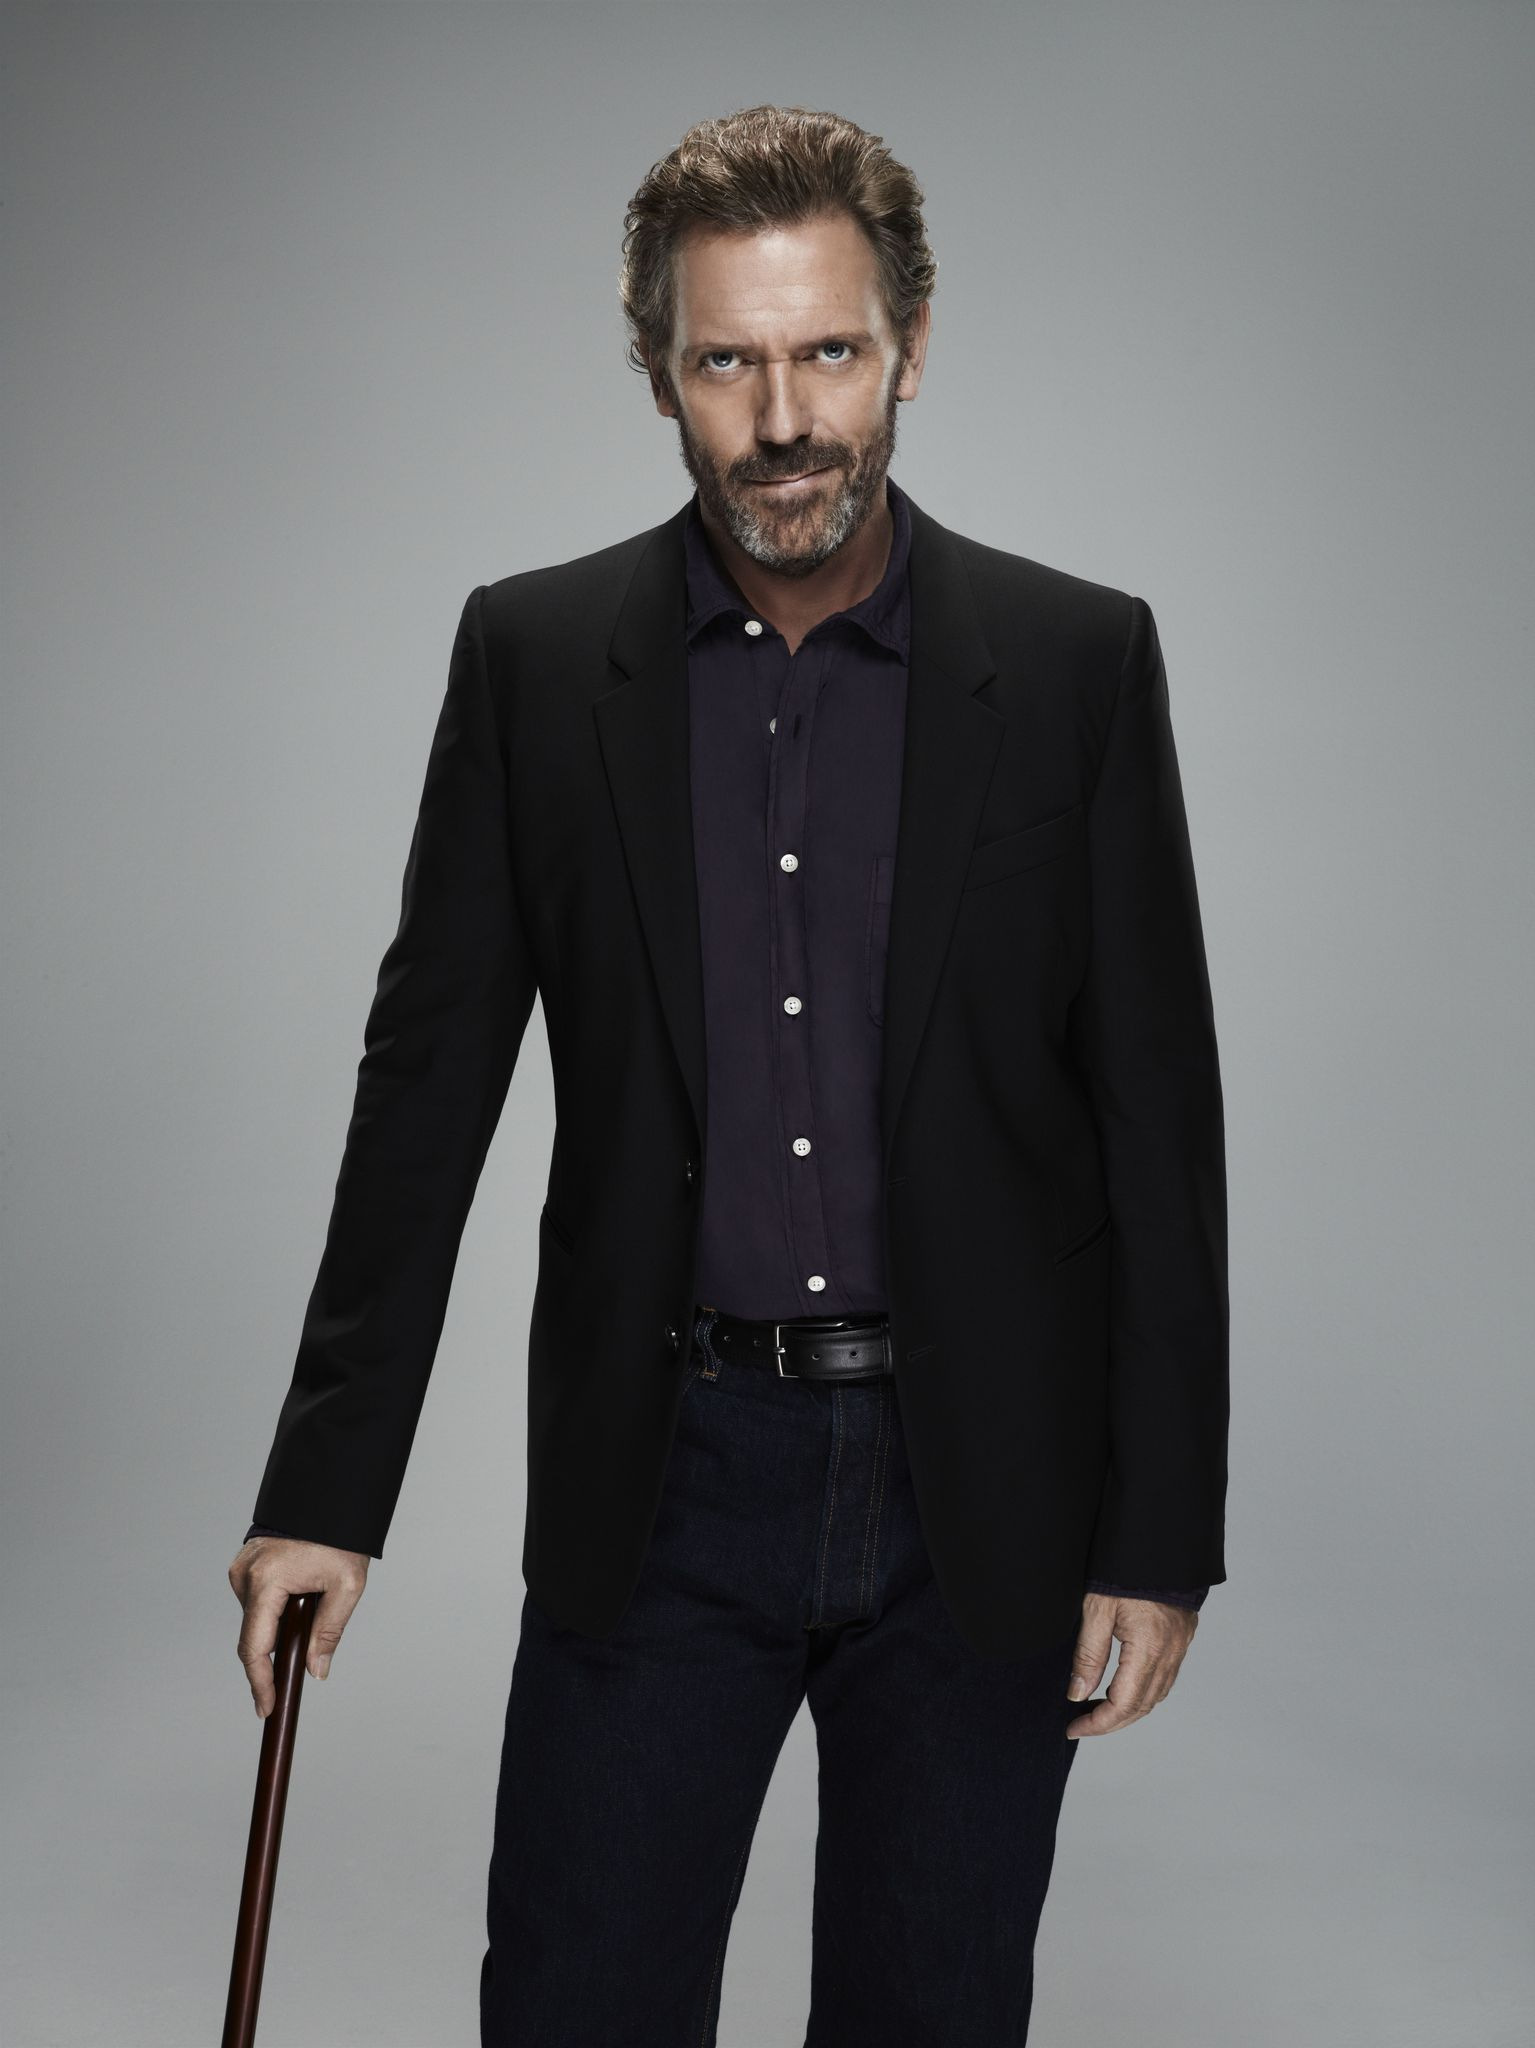 Dr Gregory House Dr Gregory House Photo 31945732